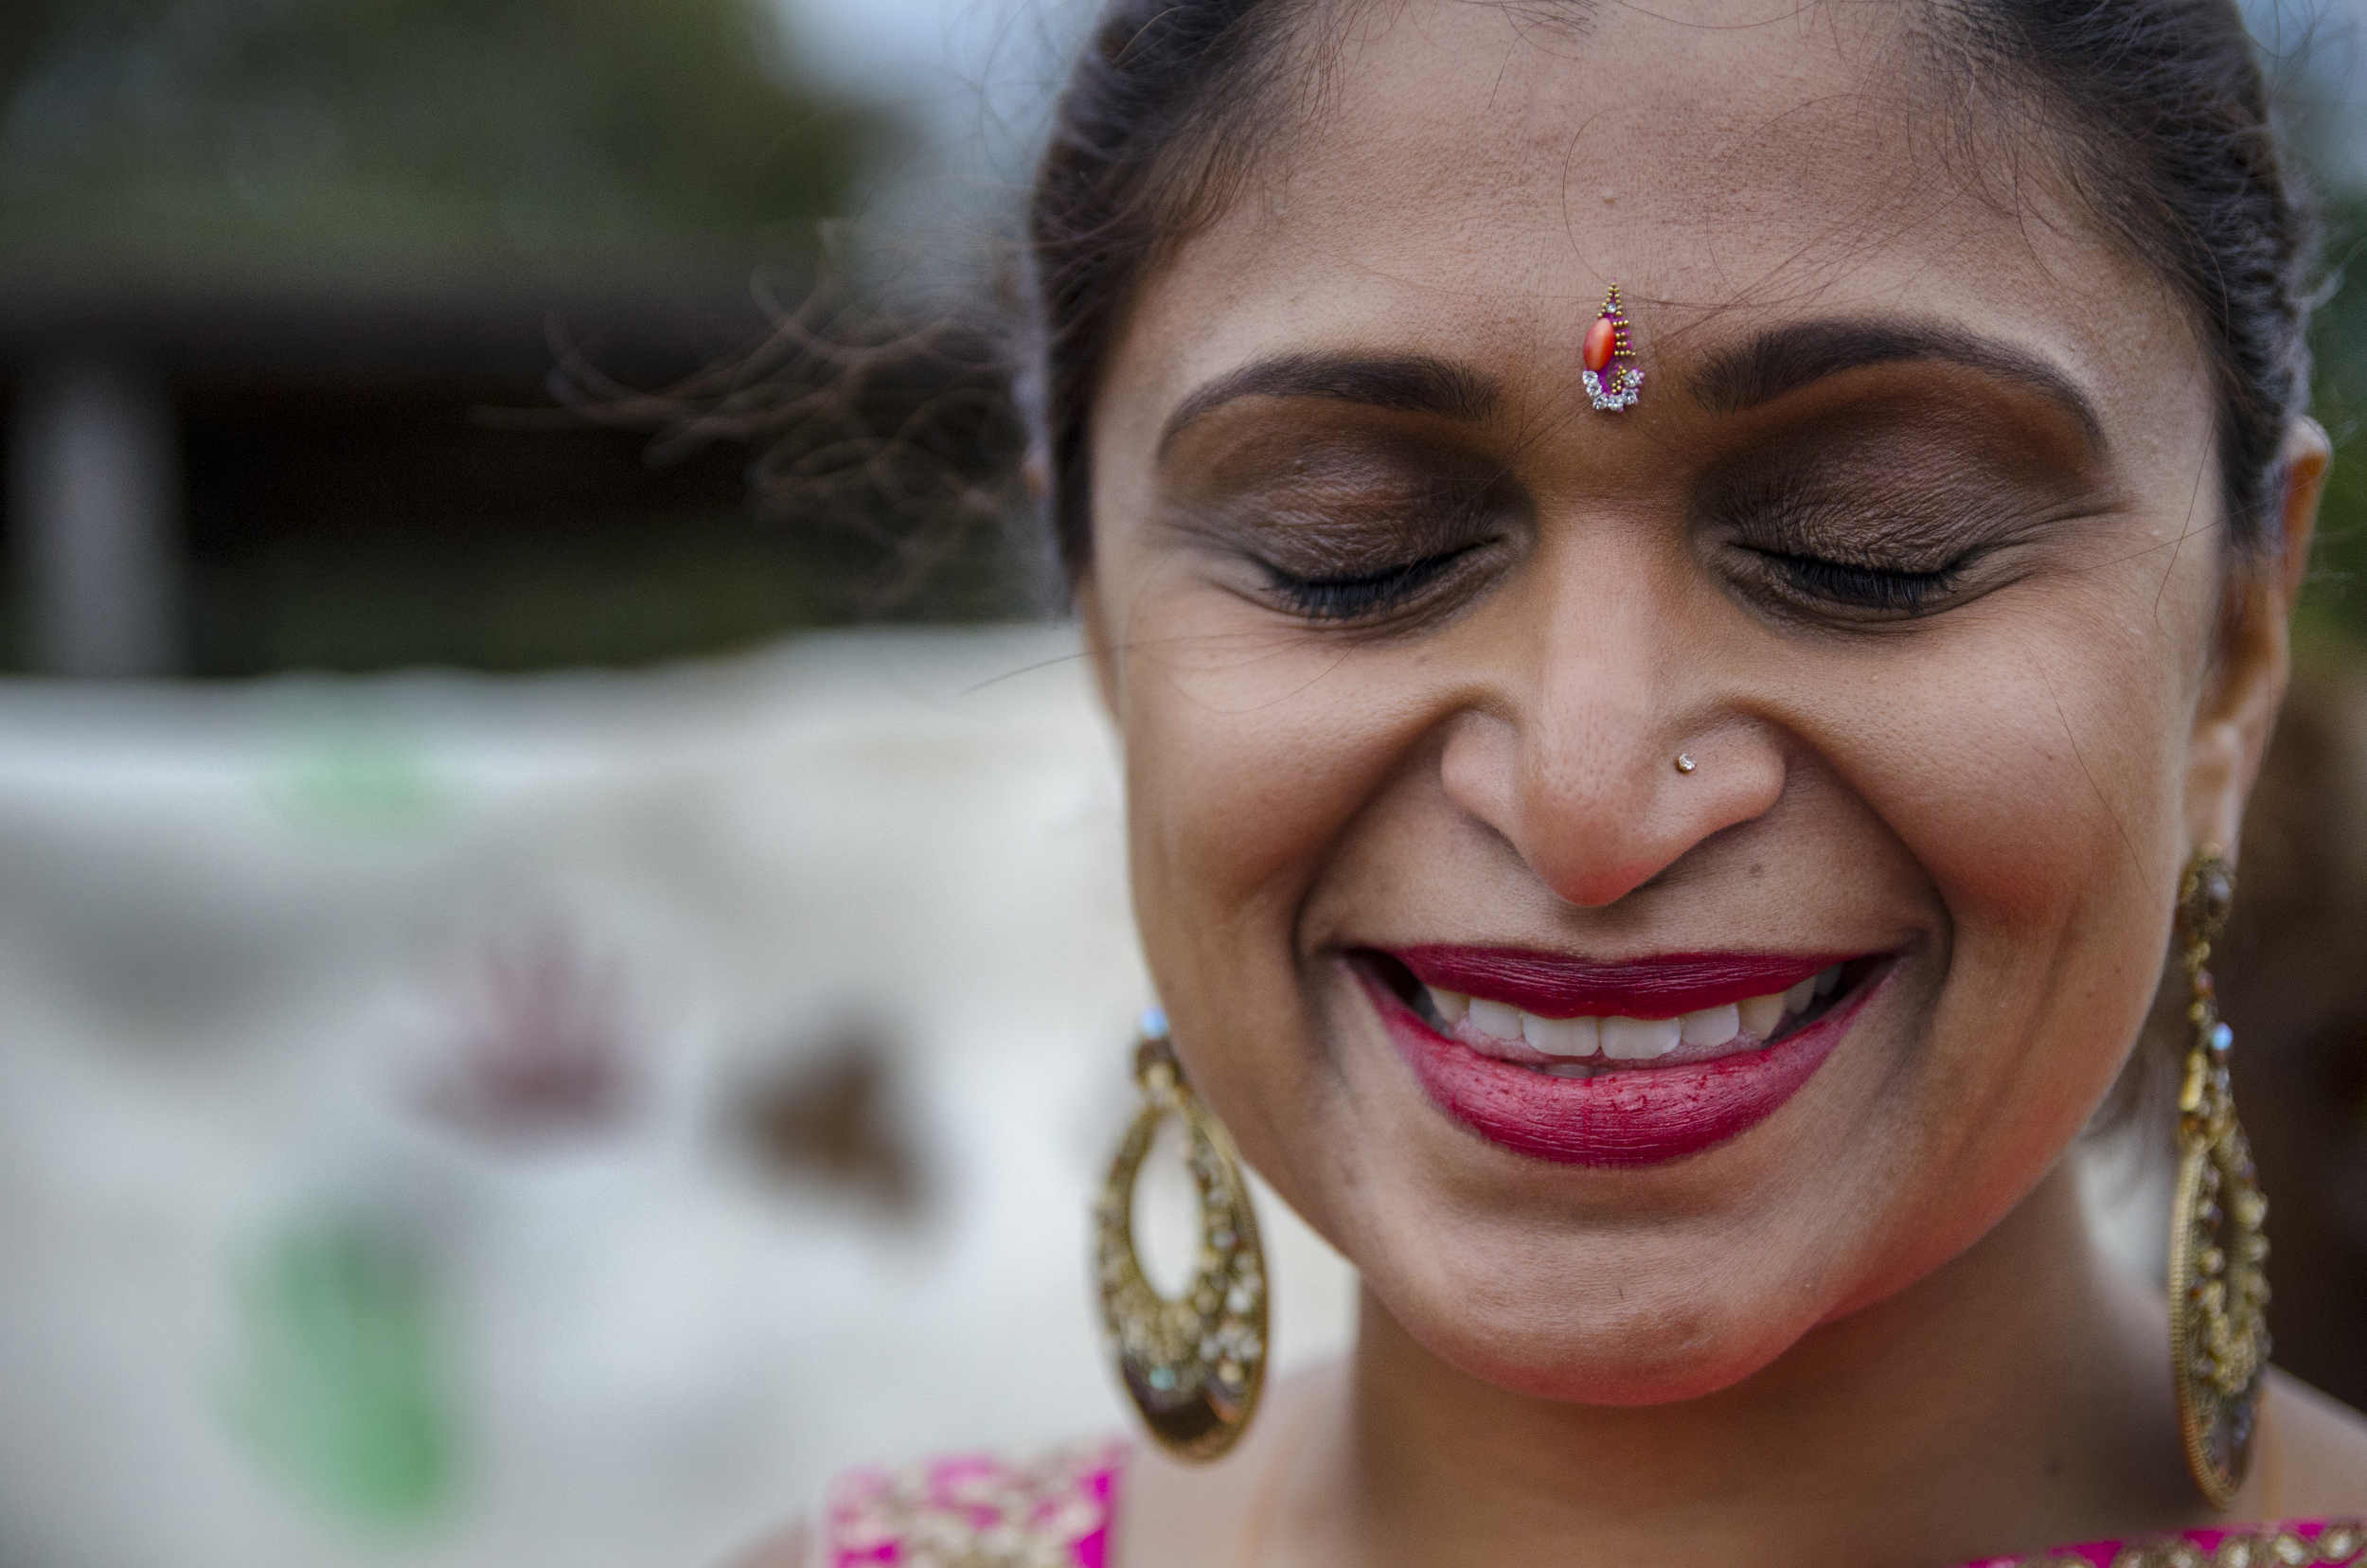 Mrs. Ruda grins in response to warm words from her husband, Mr. Ruda onthe Diwali festival at Bhaktivedanta Manor Hare Krishna Temple in Watford, London, UK.